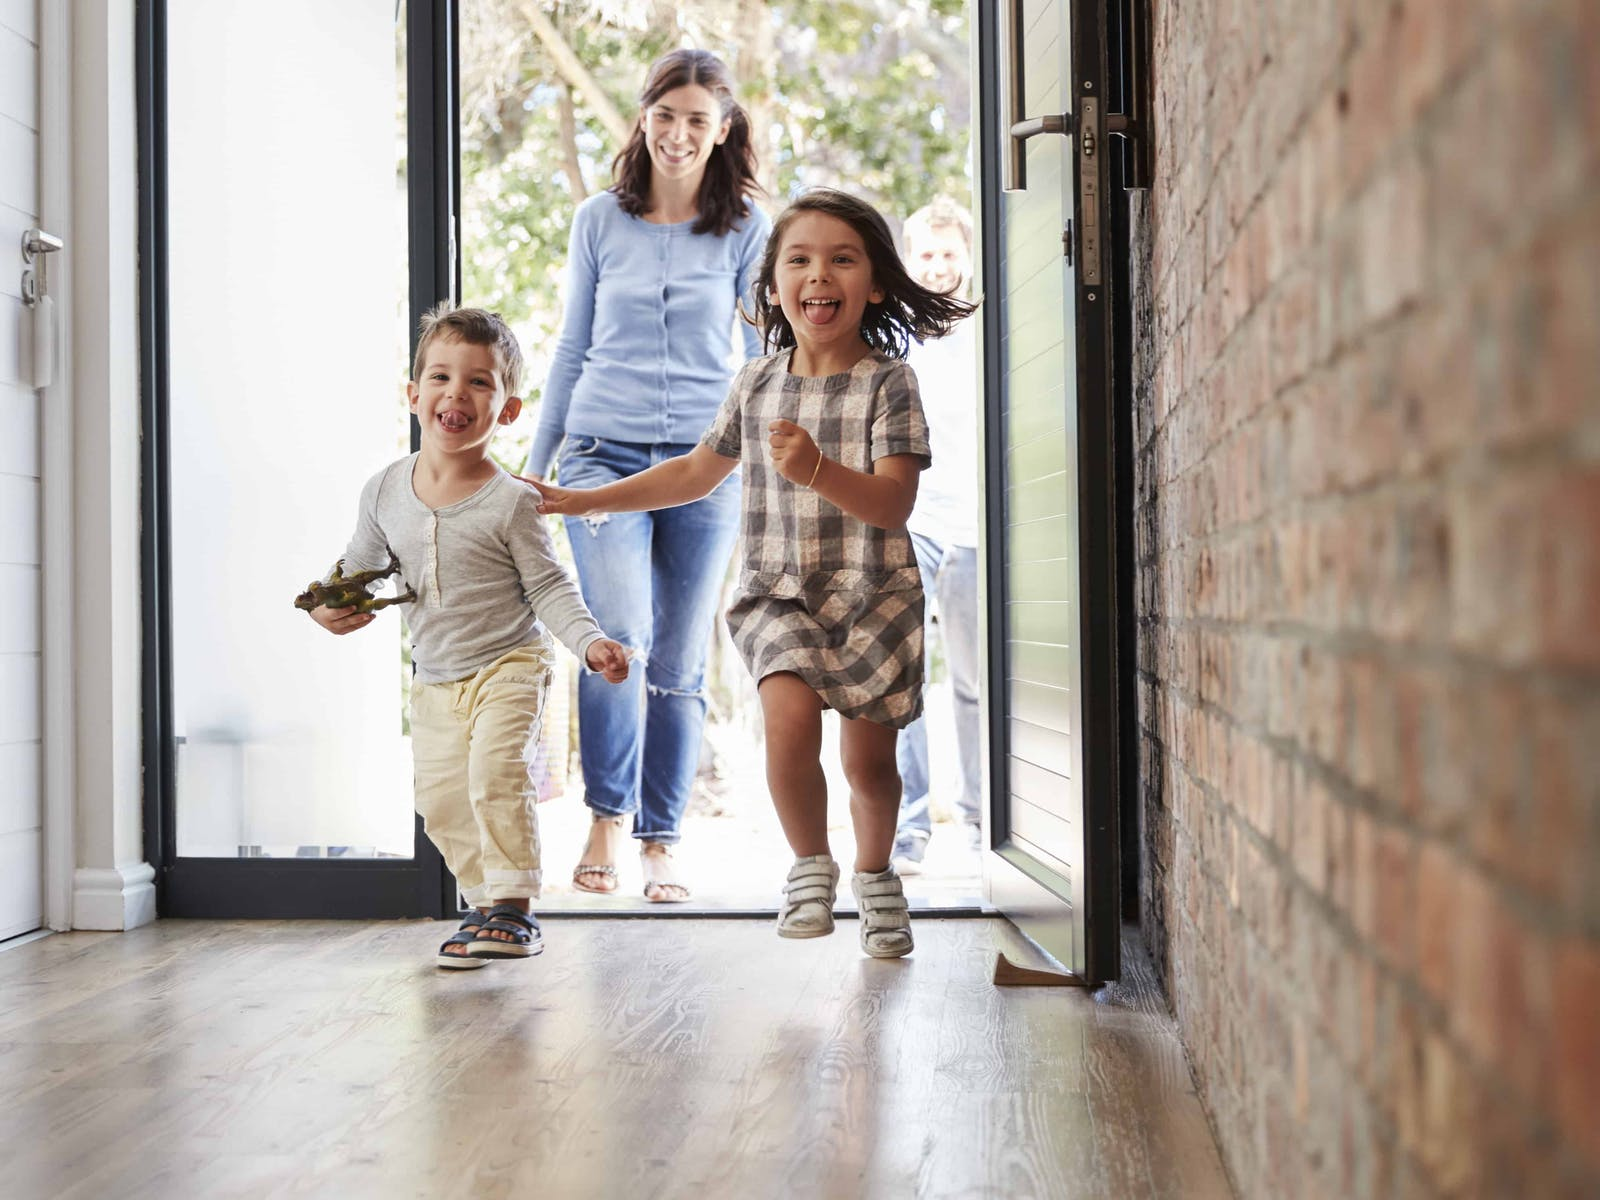 kids running through the front door of their family's vacation home.